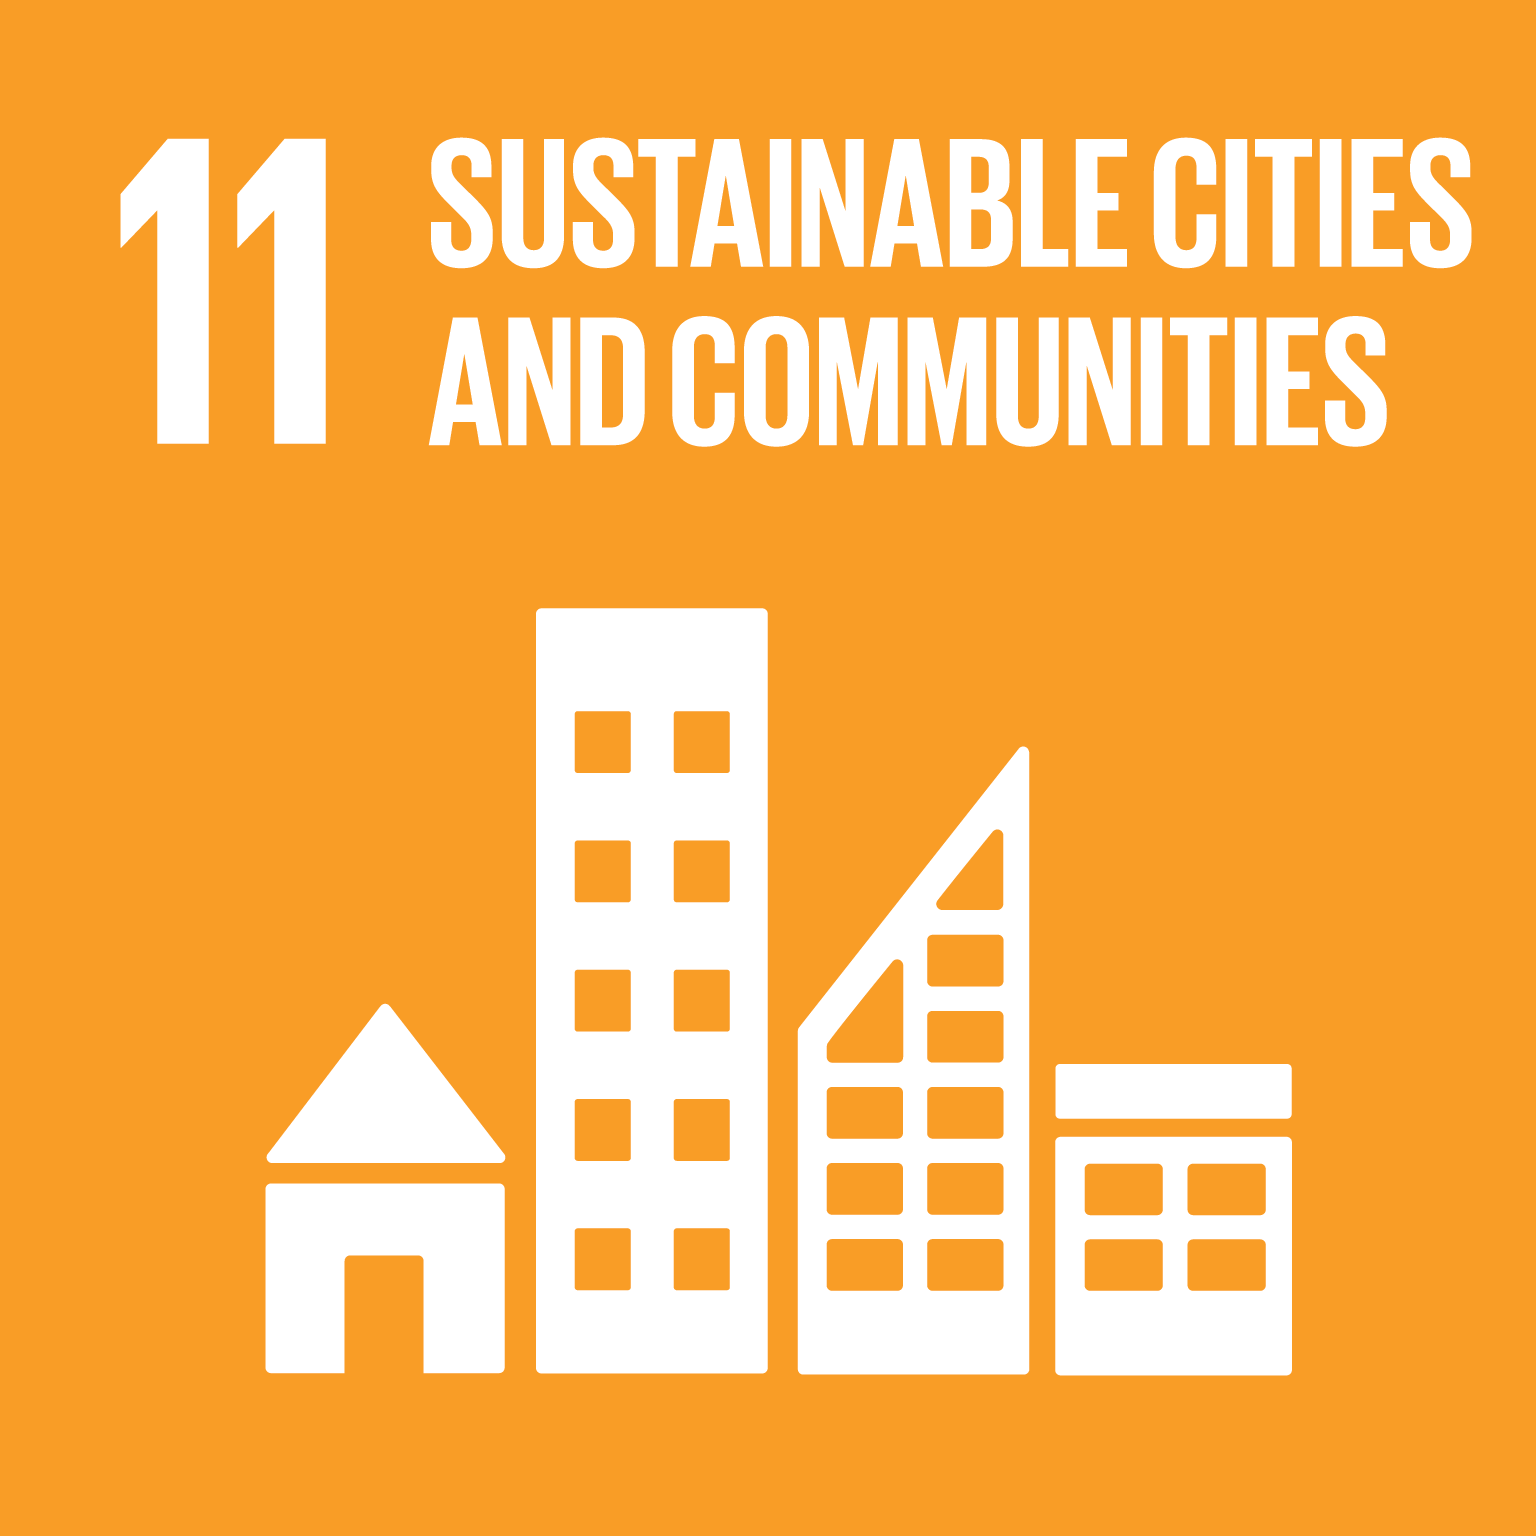 Make cities inclusive, safe, resilient and sustainable